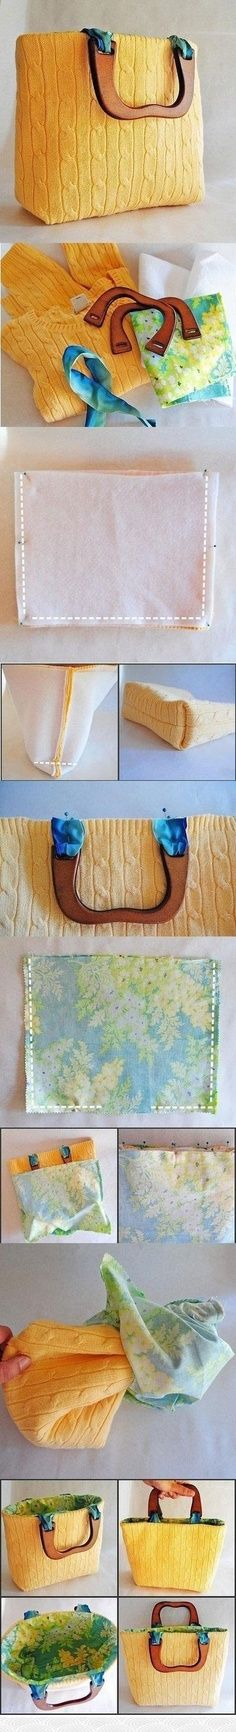 DIY Handbag crafts craft ideas easy crafts diy ideas diy crafts easy diy fun diy craft fashion fashion diy diy accessories craft purse craft accessories diy hand bag